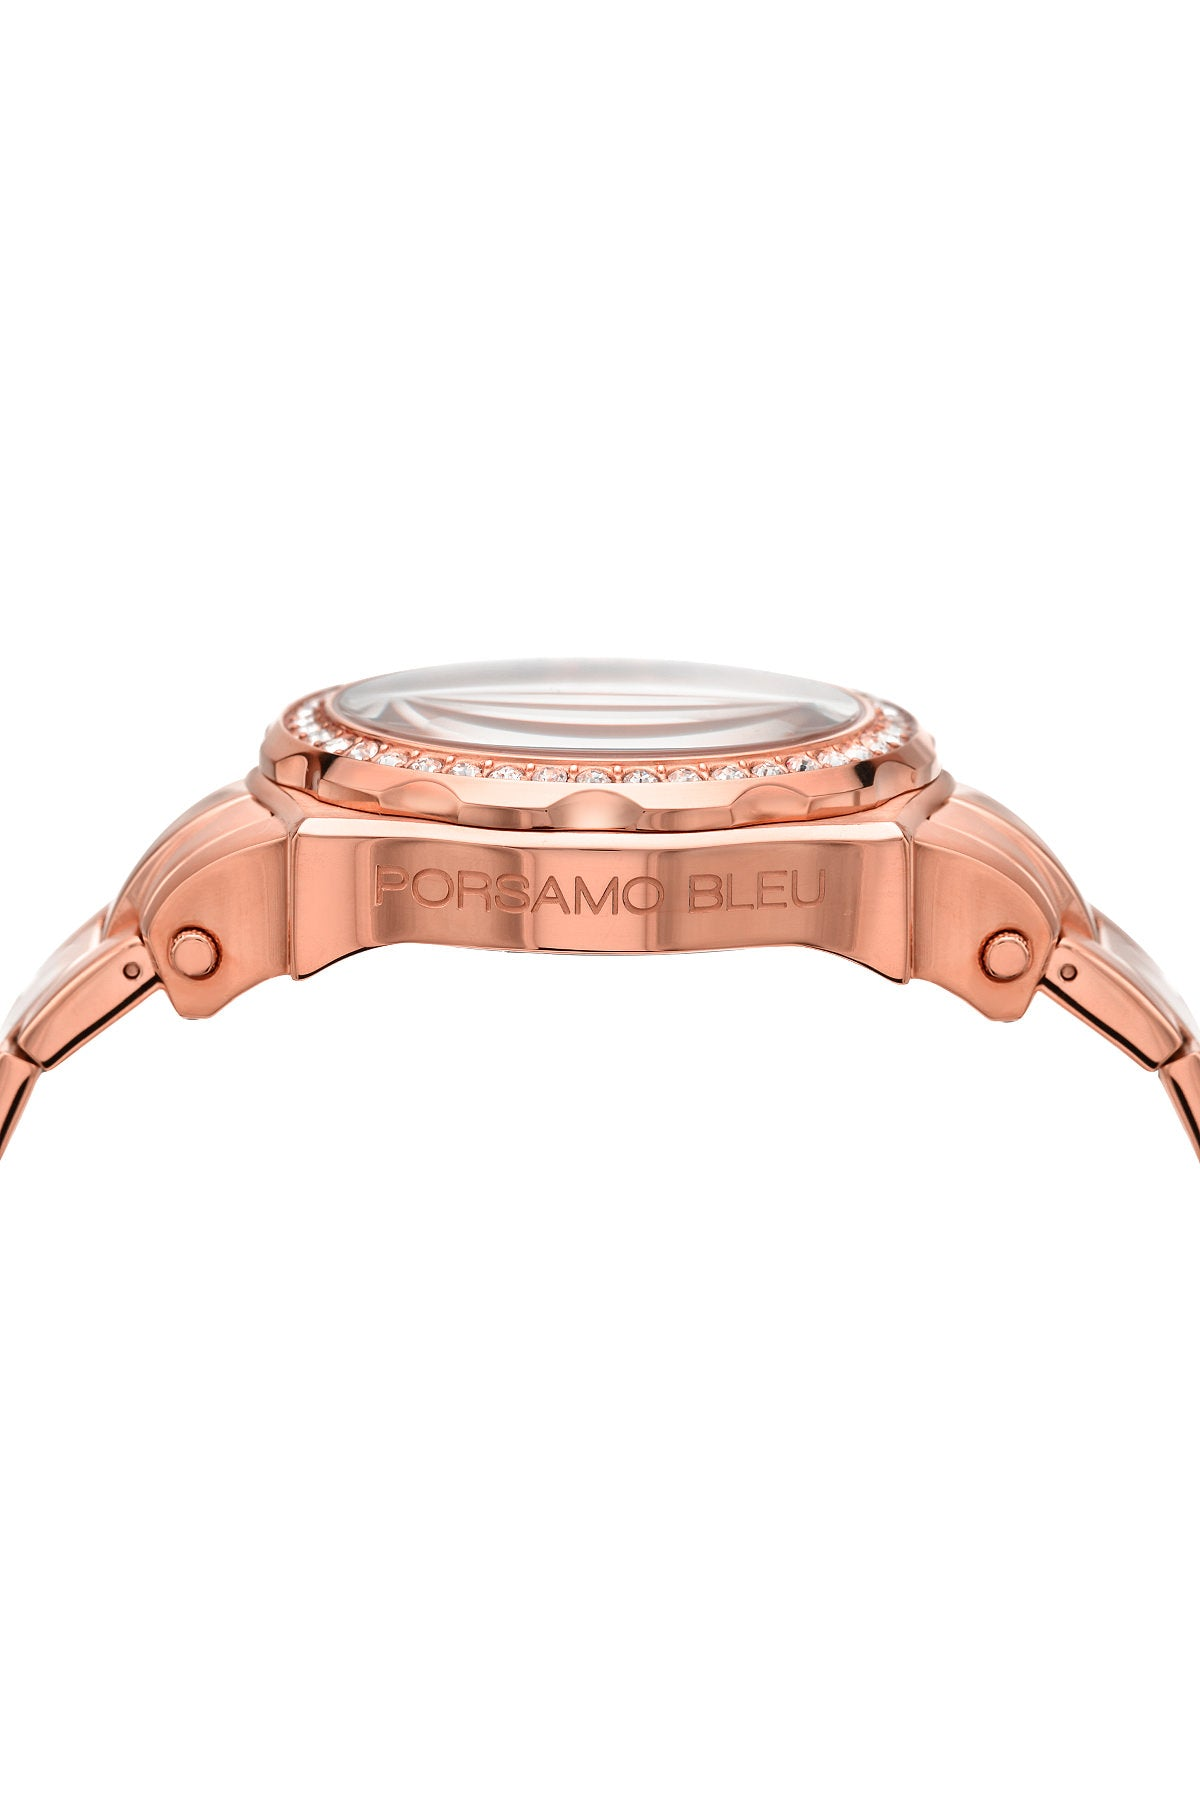 Porsamo Bleu Milan Crystal luxury women's stainless steel watch, Swarovski® crystals, rose, 038GMCS